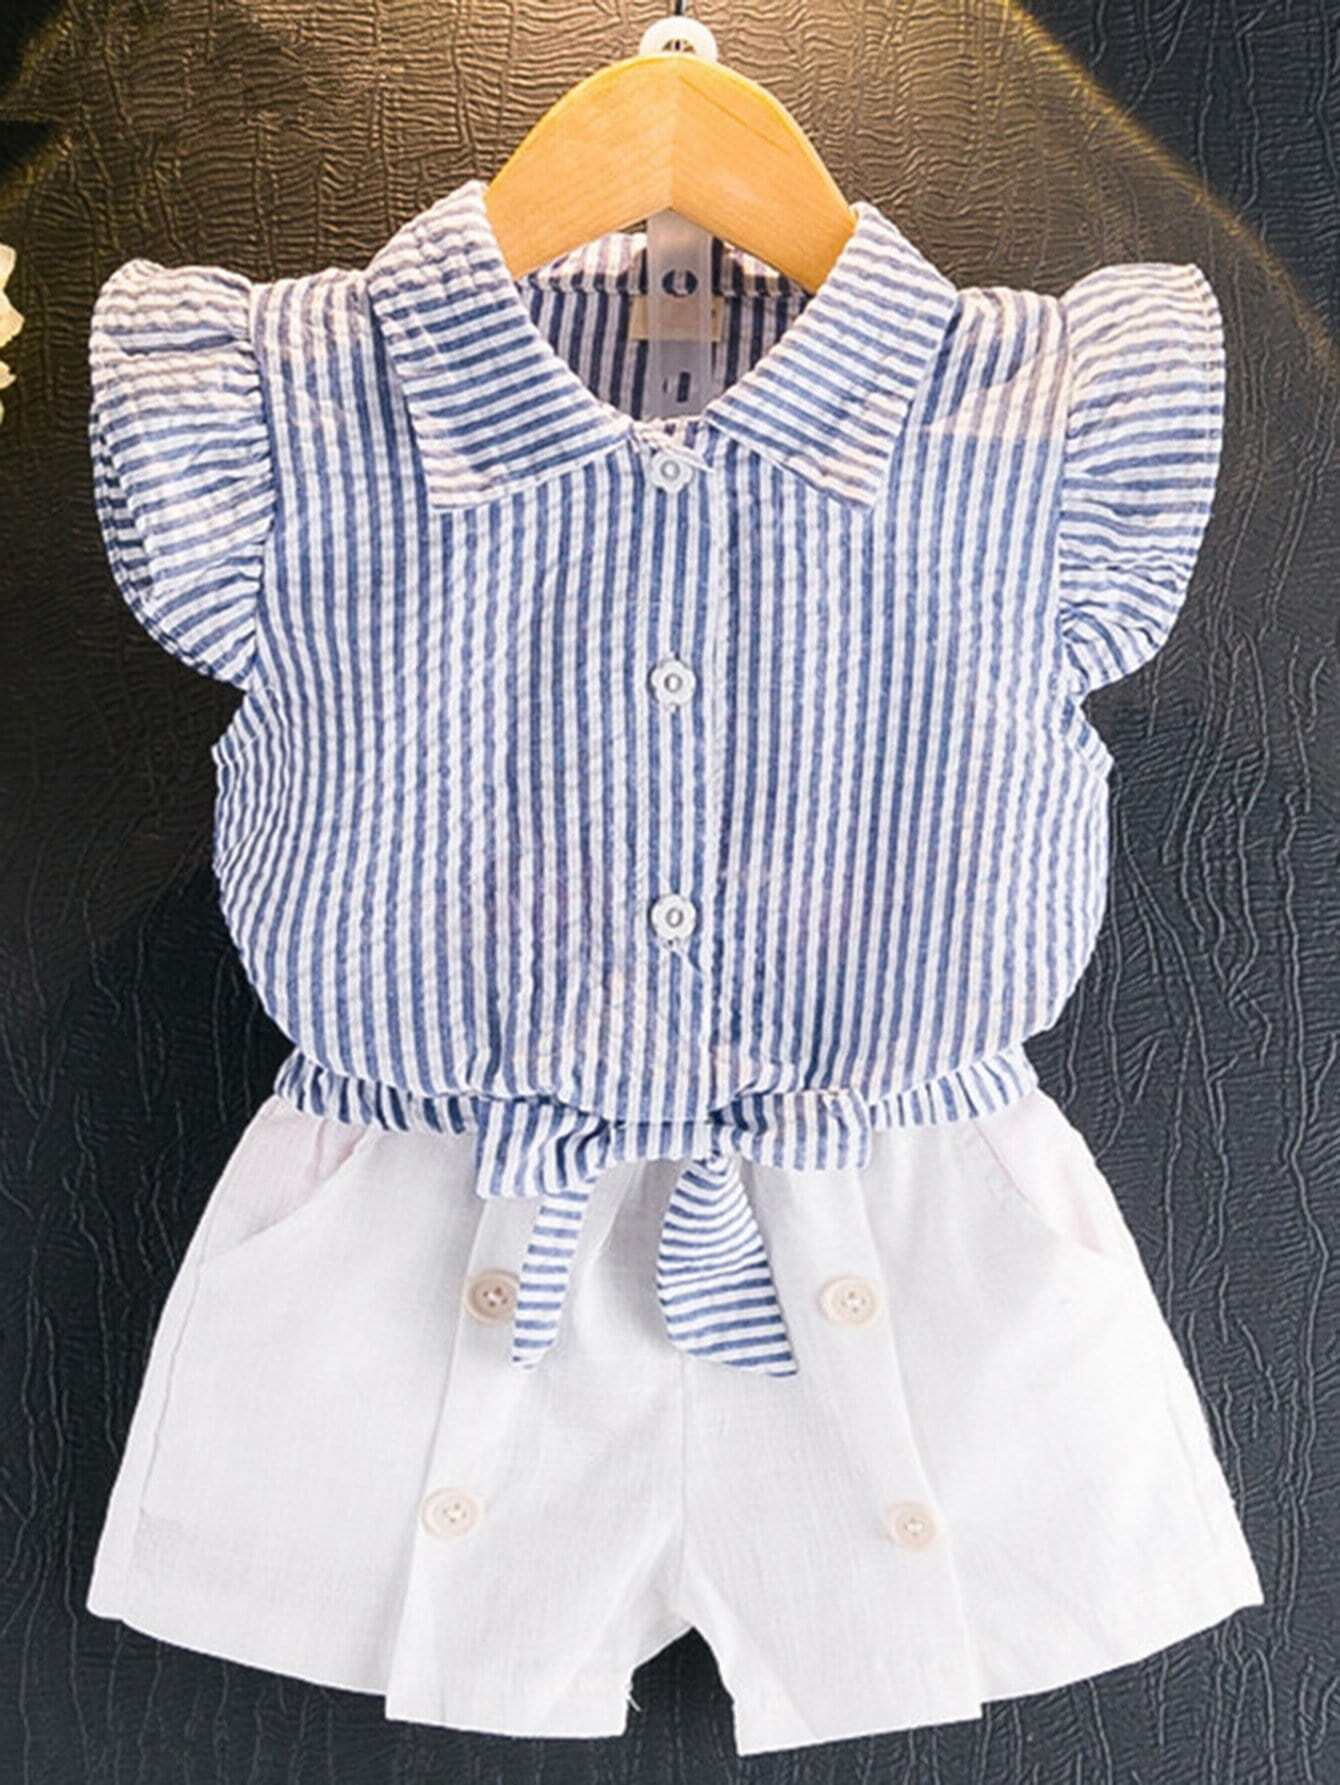 Kids Knot Striped Blouse With Button Decoration Plain Shorts boat neckline striped blouse with buttons